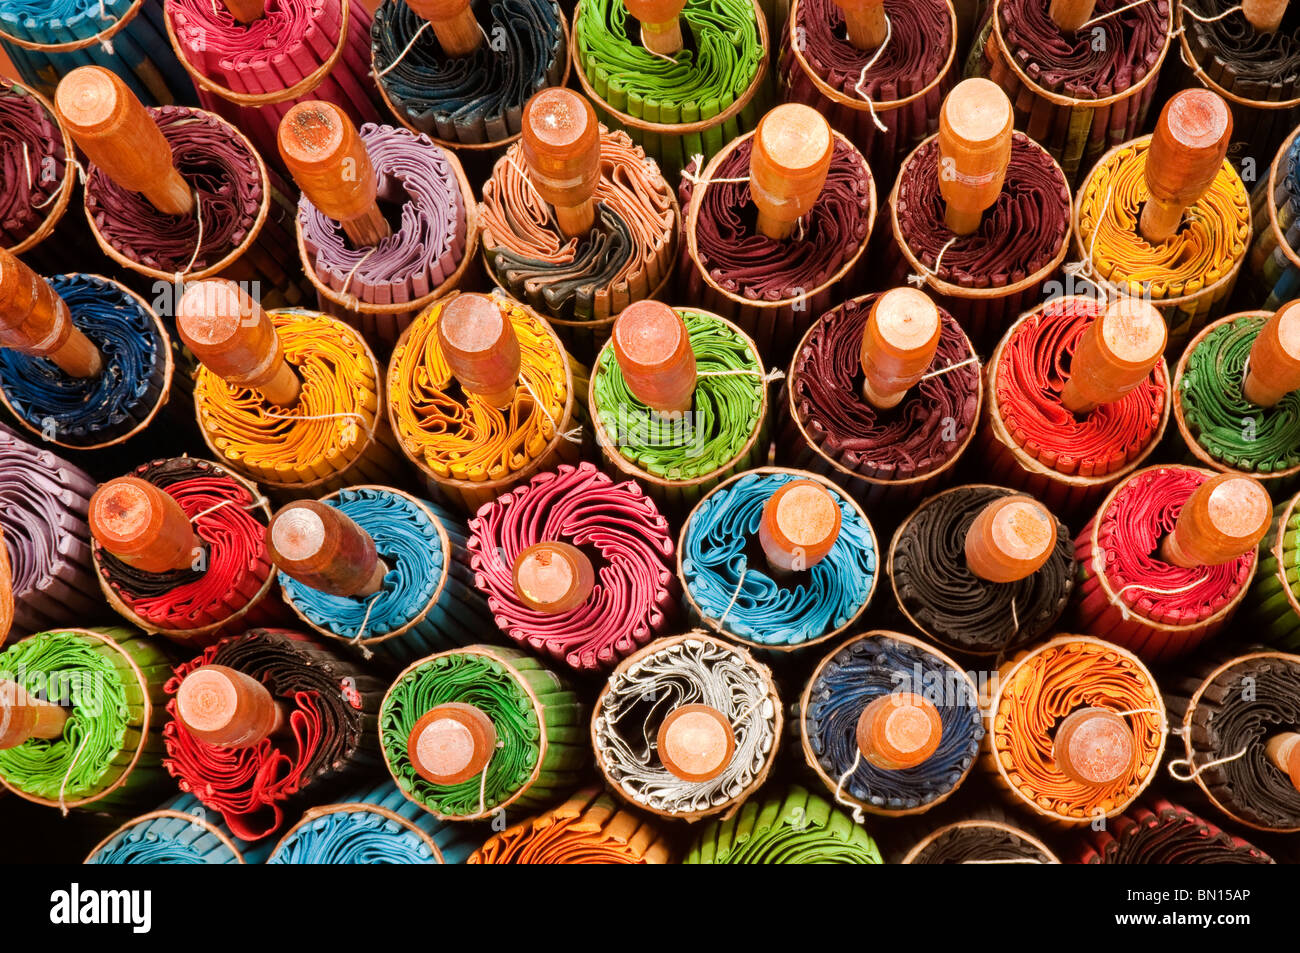 Rolled up umbrellas at The Umbrella Factory in Chiang Mai, Thailand. - Stock Image